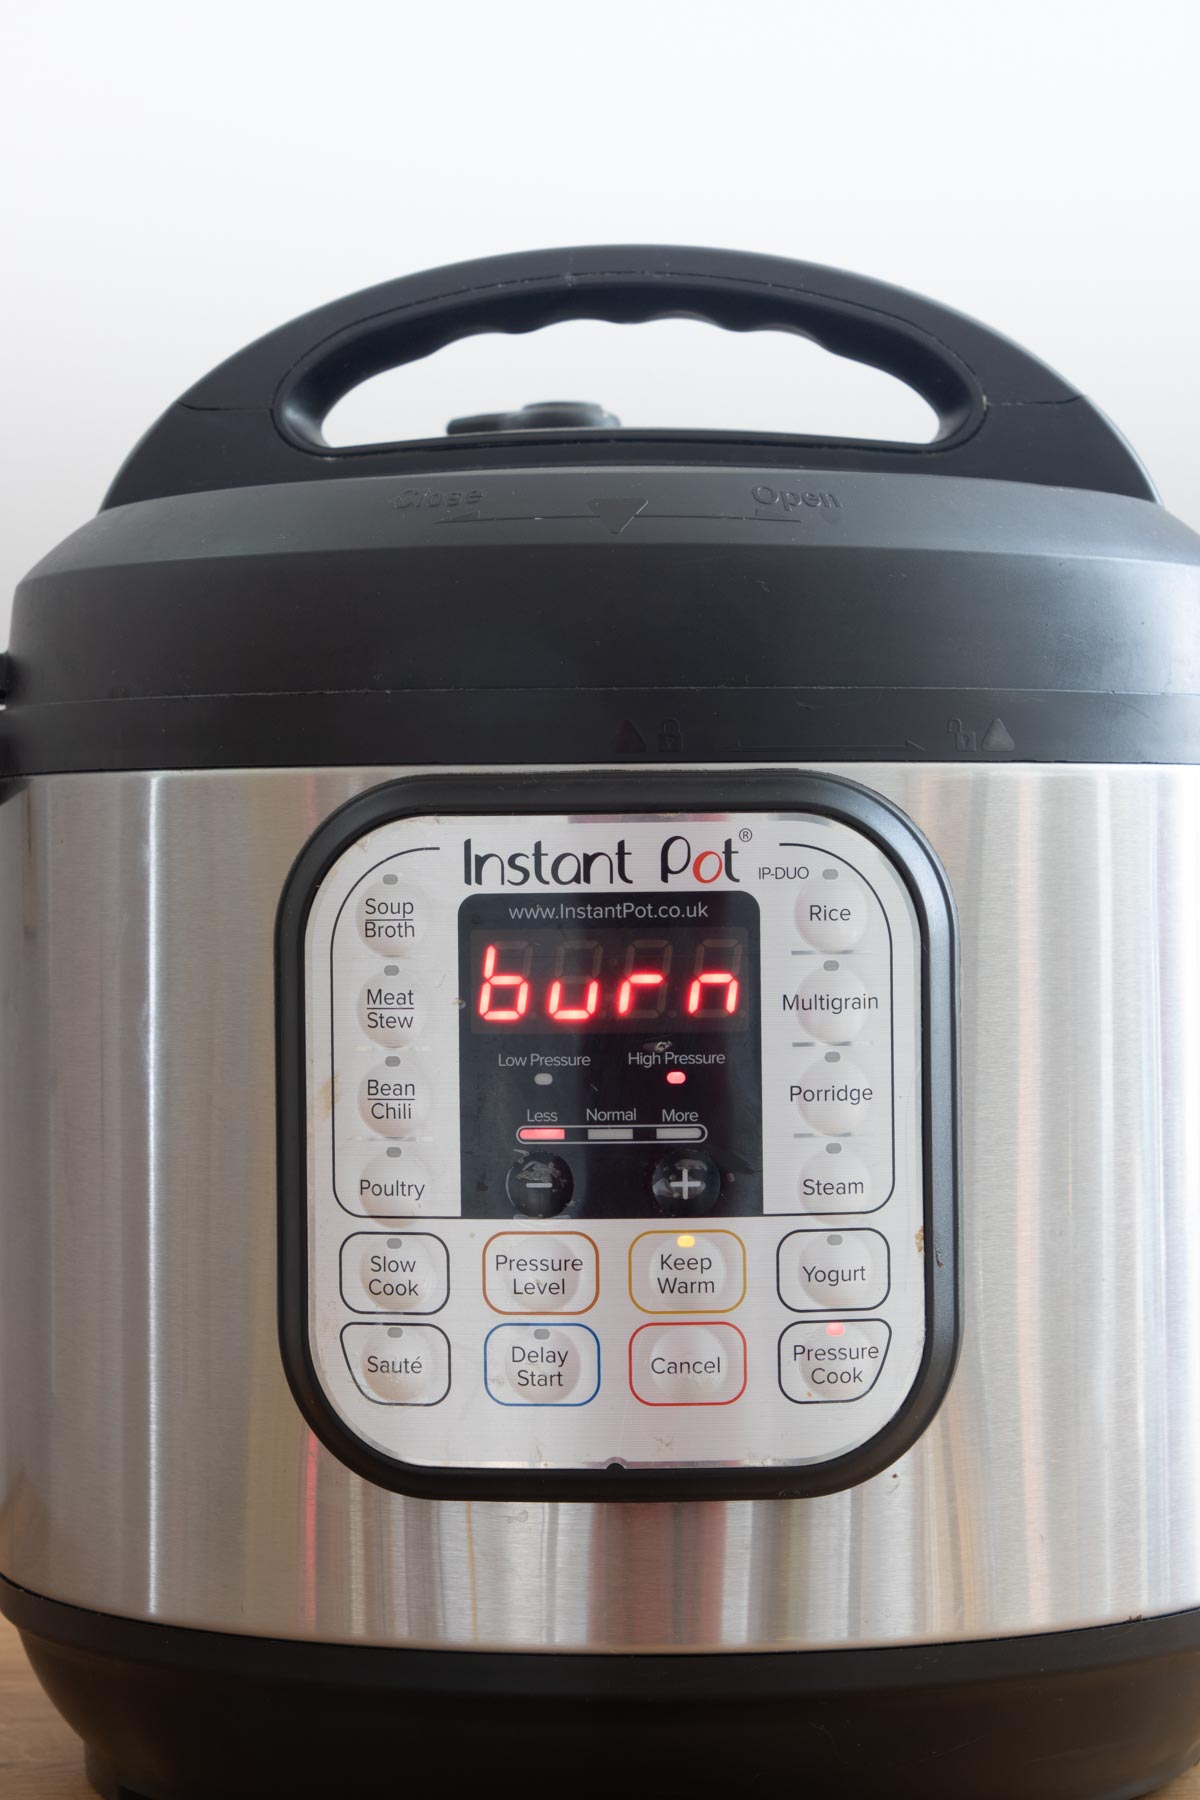 the front view of an instant pot burn message